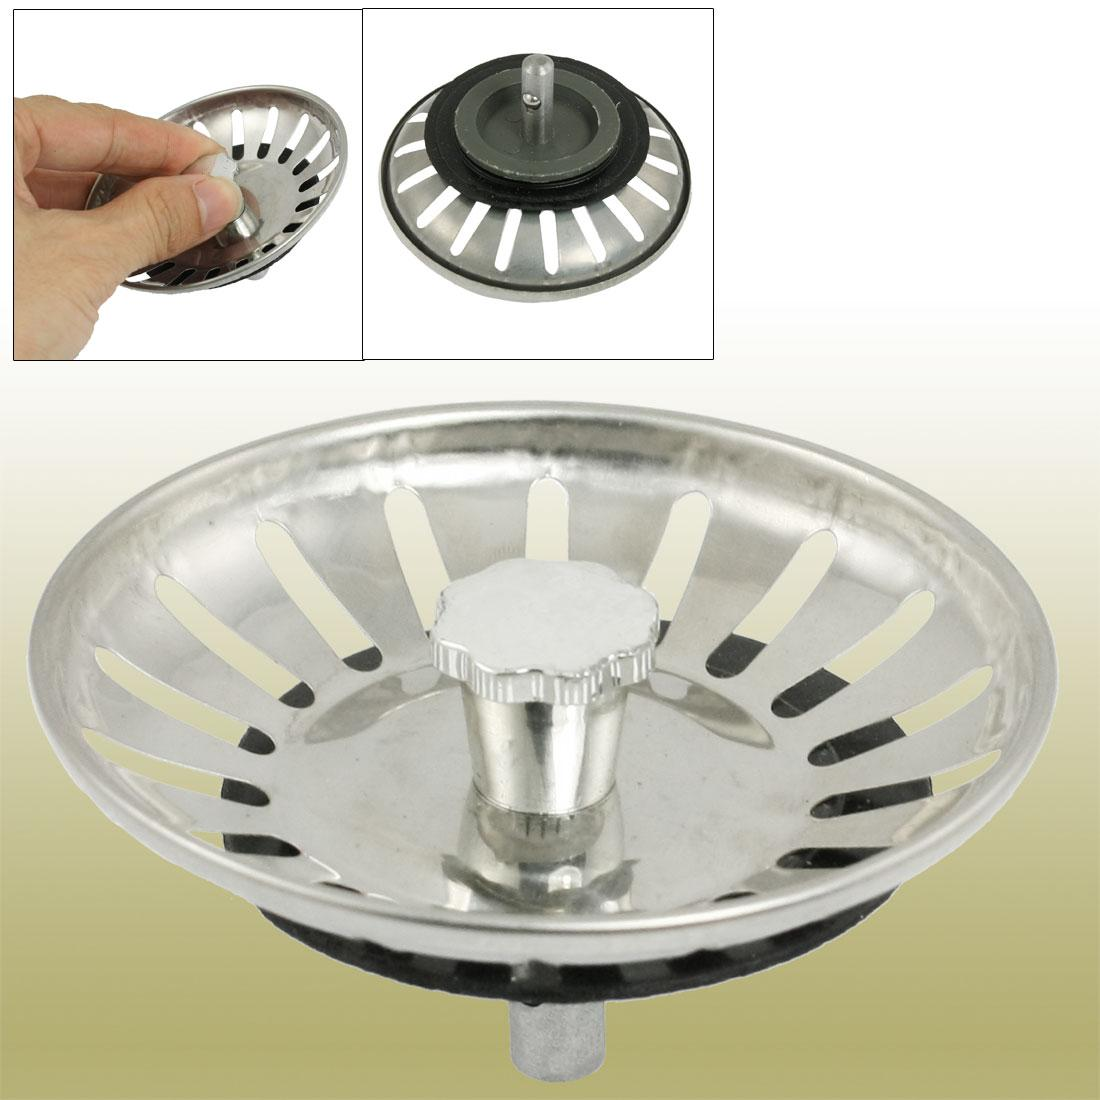 Online Cheap 3 Inch Dia Stainless Steel Kitchen Sink Strainer Drain Stopper By Ux168car Dhgate Com